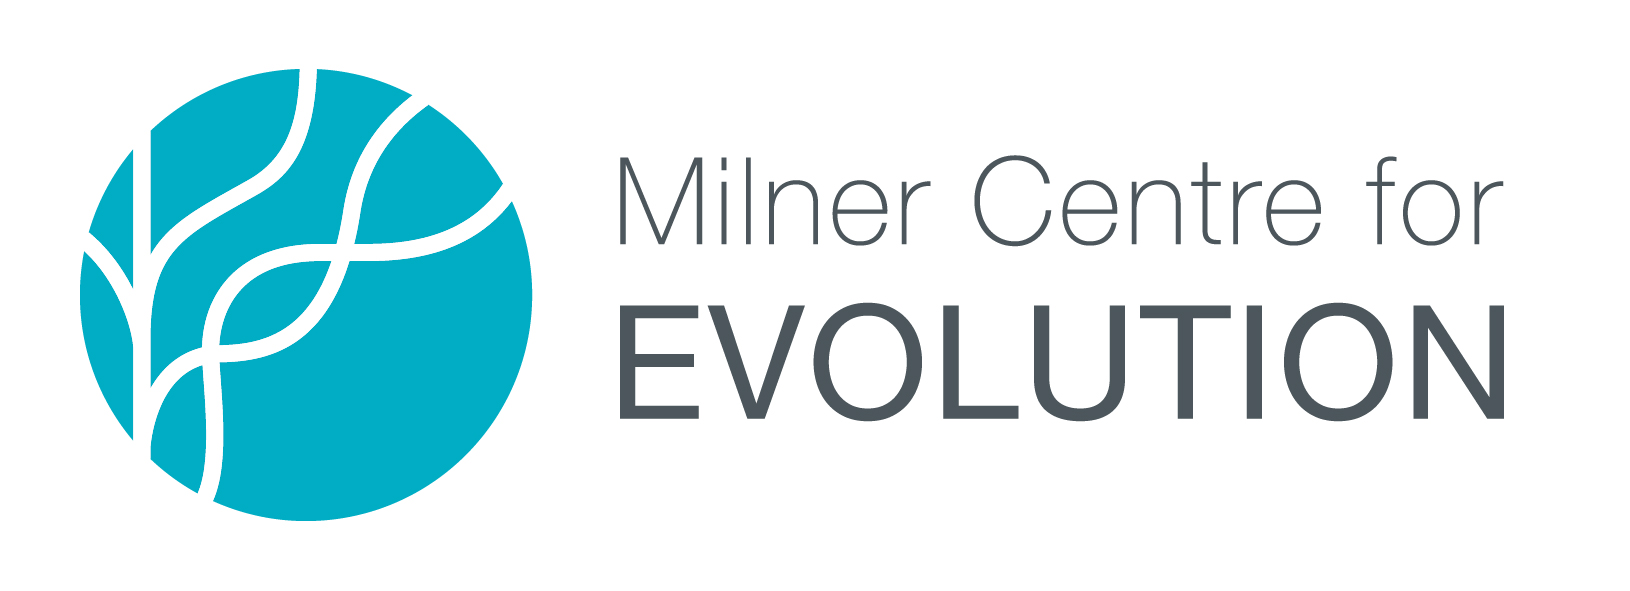 The Milner Centre for Evolution